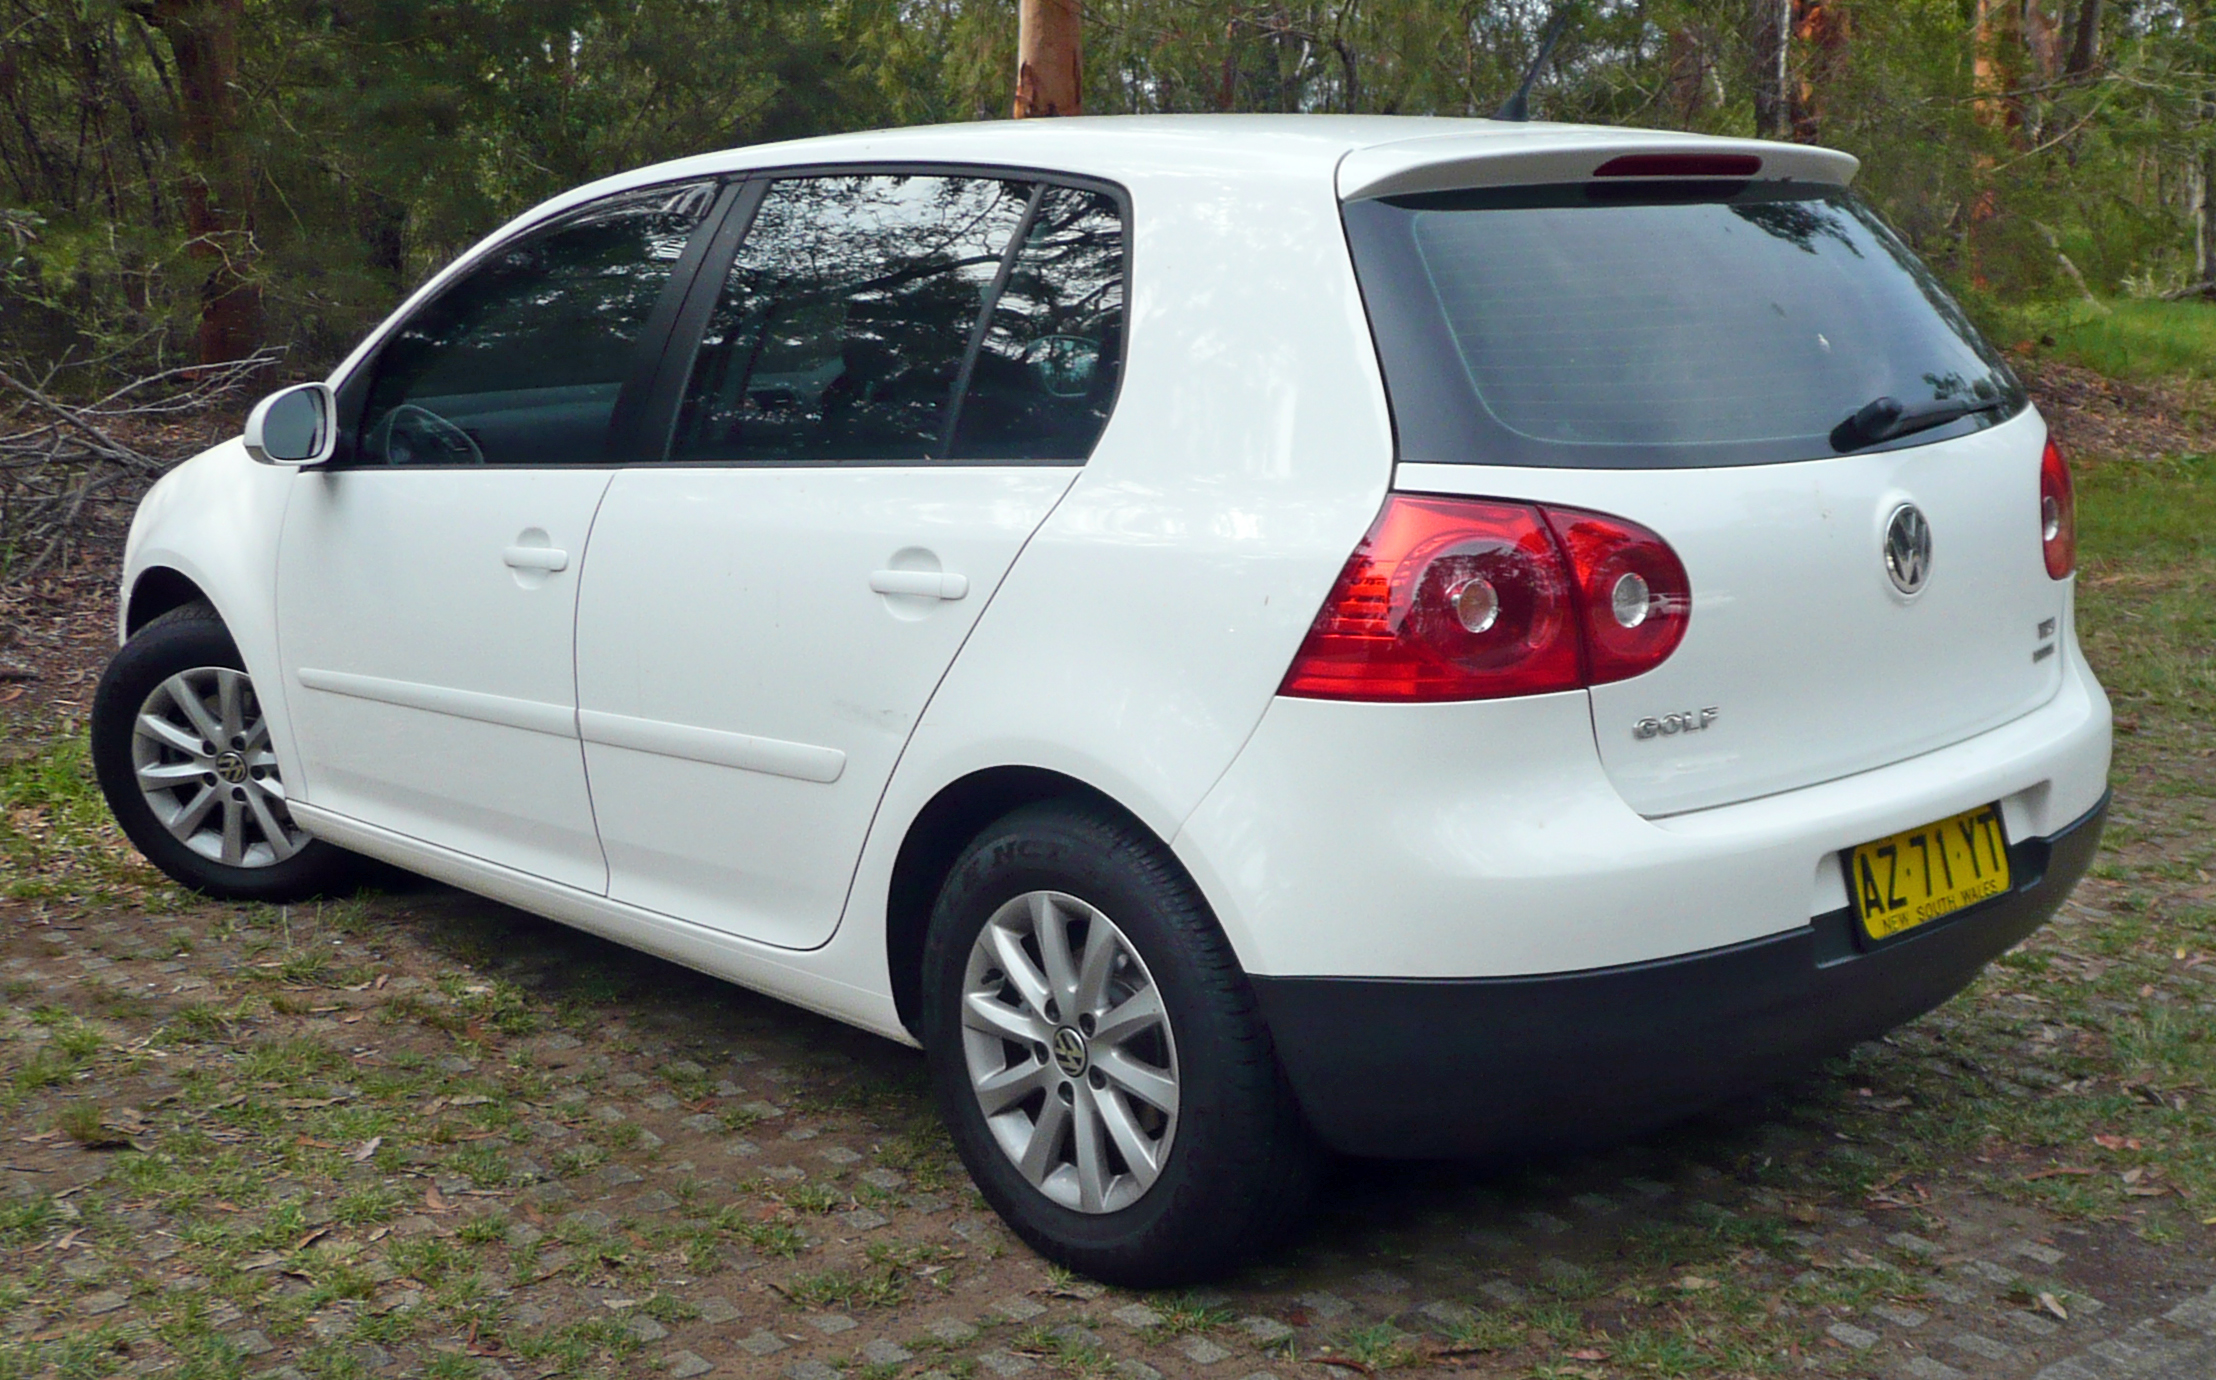 file 2008 volkswagen golf 1k my09 edition 1 9 tdi 5 door. Black Bedroom Furniture Sets. Home Design Ideas